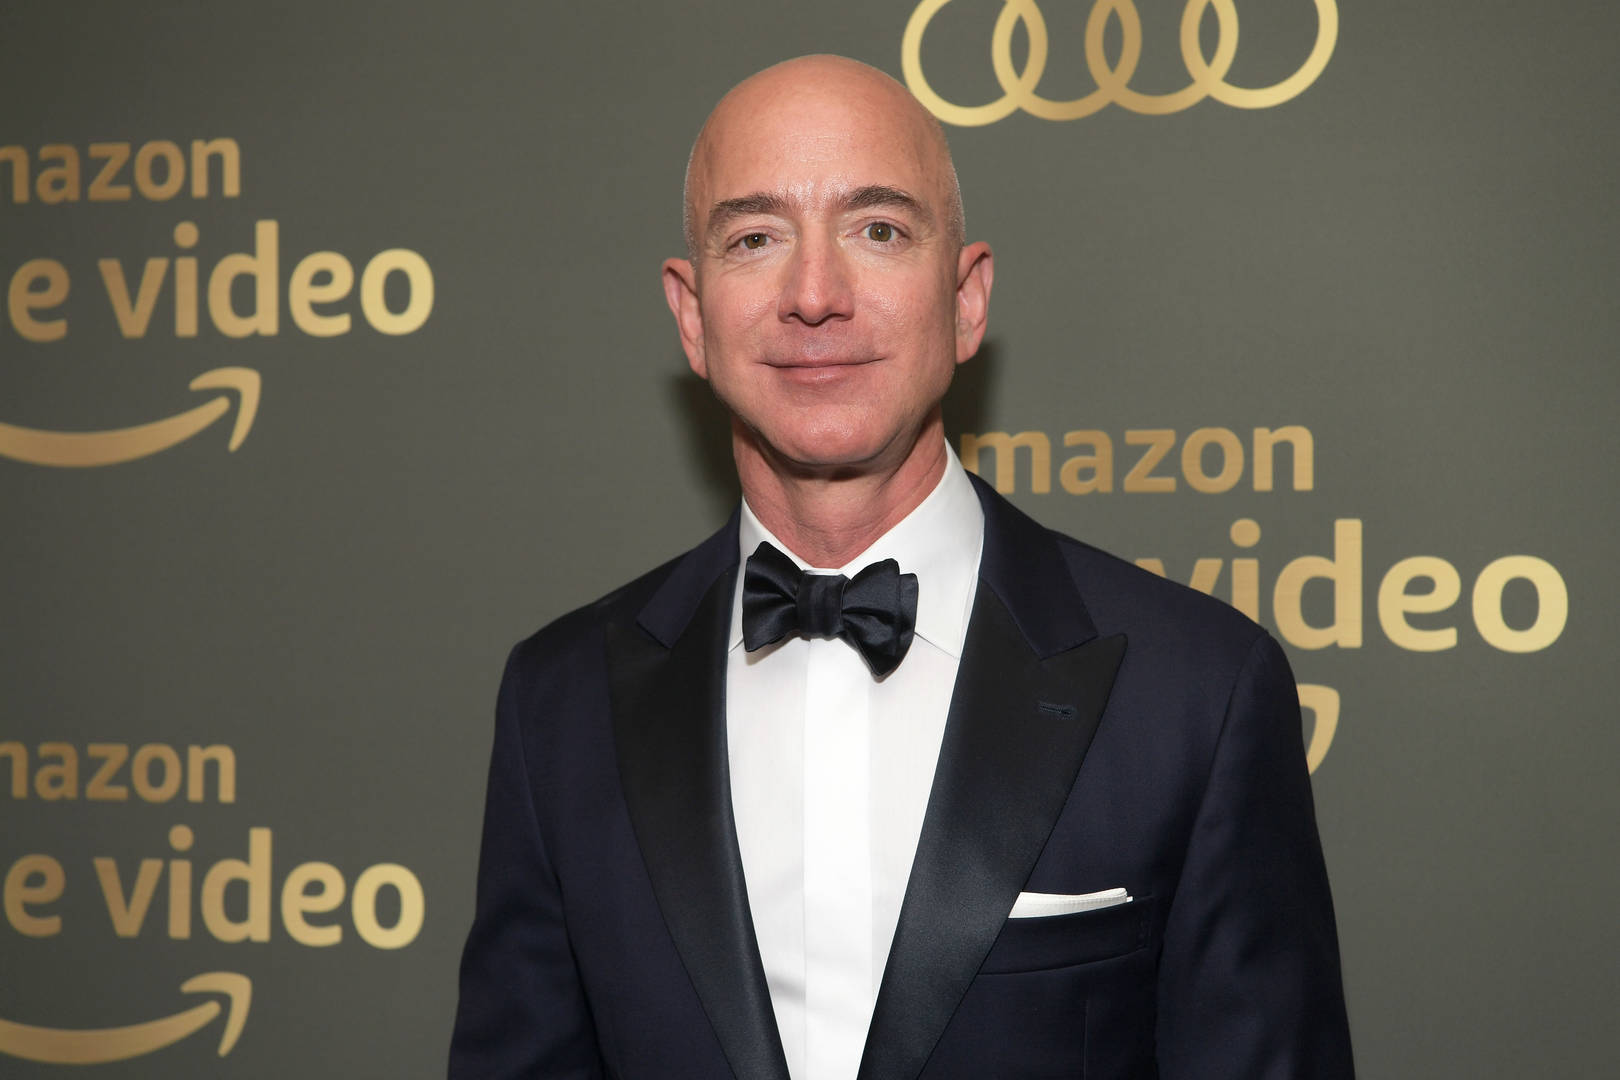 Jeff Bezos Obtains The Most Expensive Home In L.A. For $165 Million